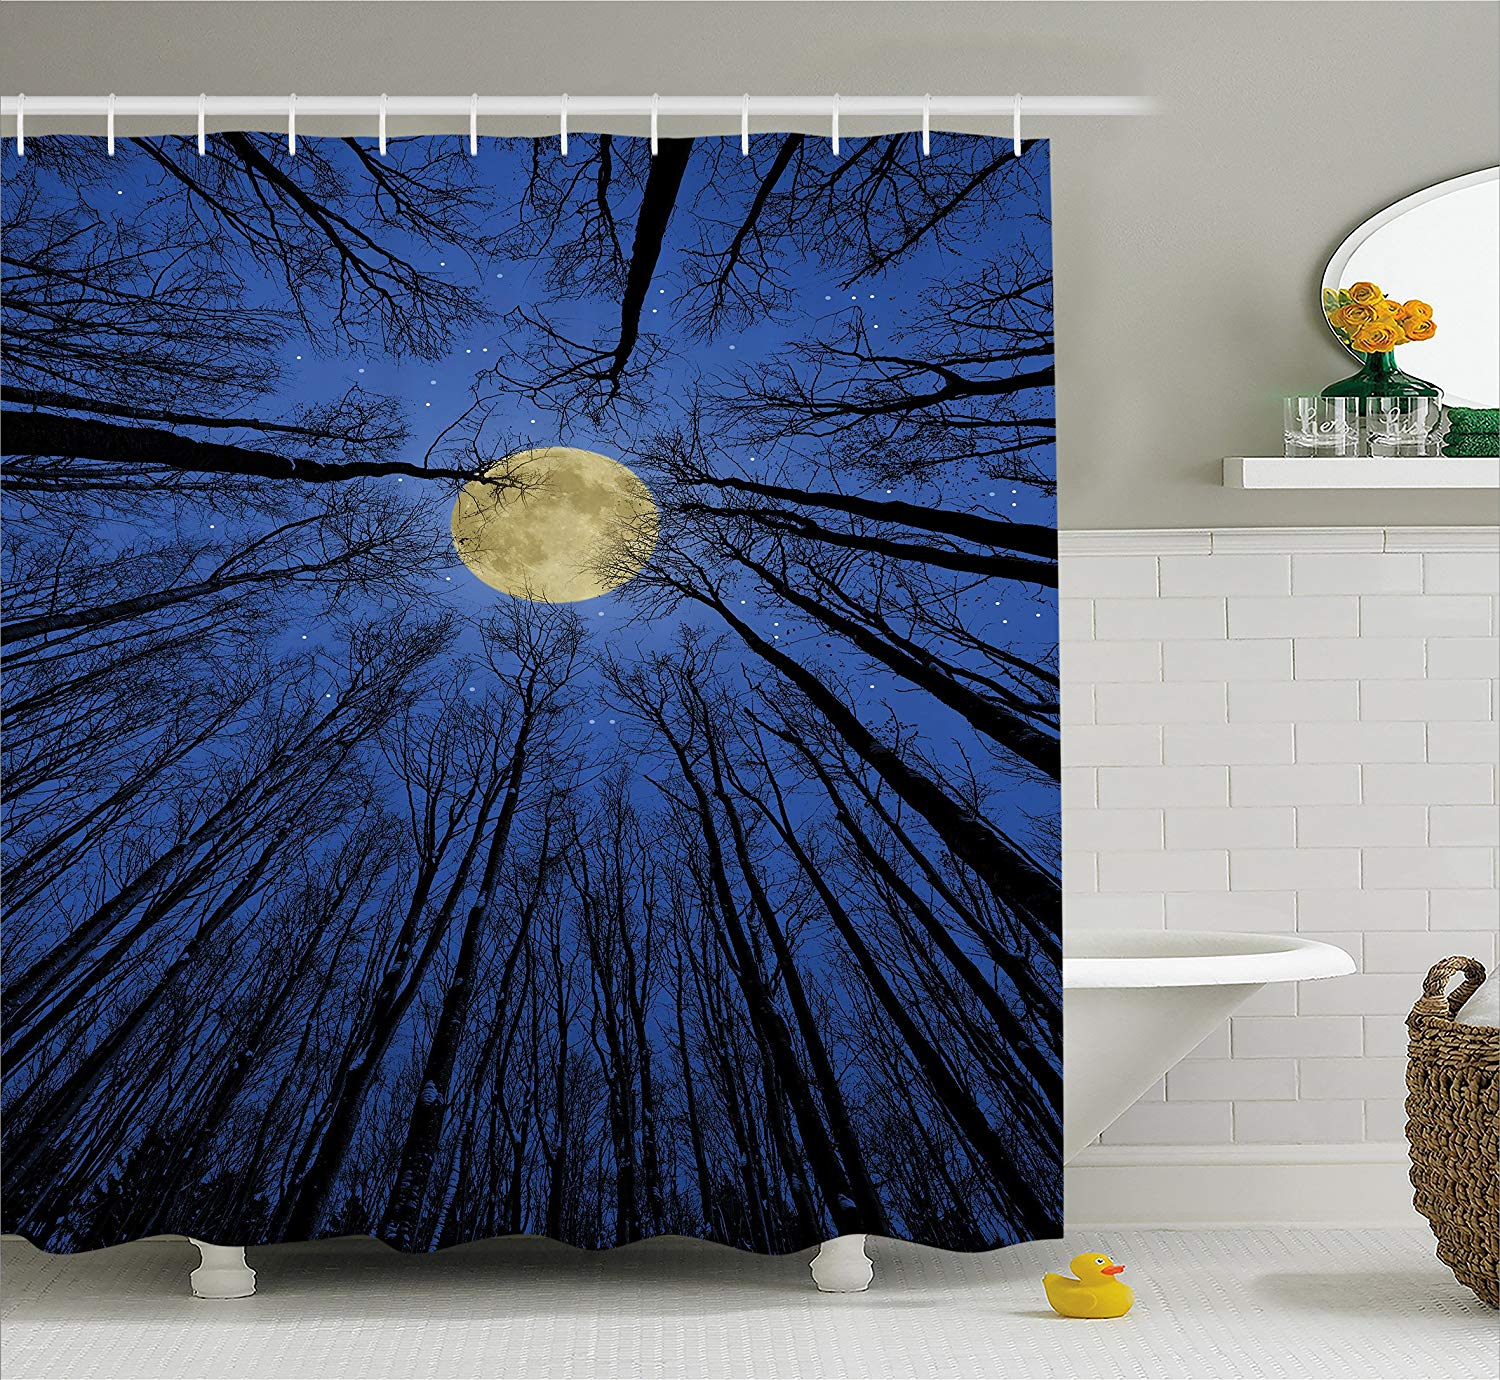 Forest Home Decor Shower Curtain Full Moon In Woods Star Night Heavenly Lunar Treetops Up Space Art Fabric Bathroom Decor Bathroom Products